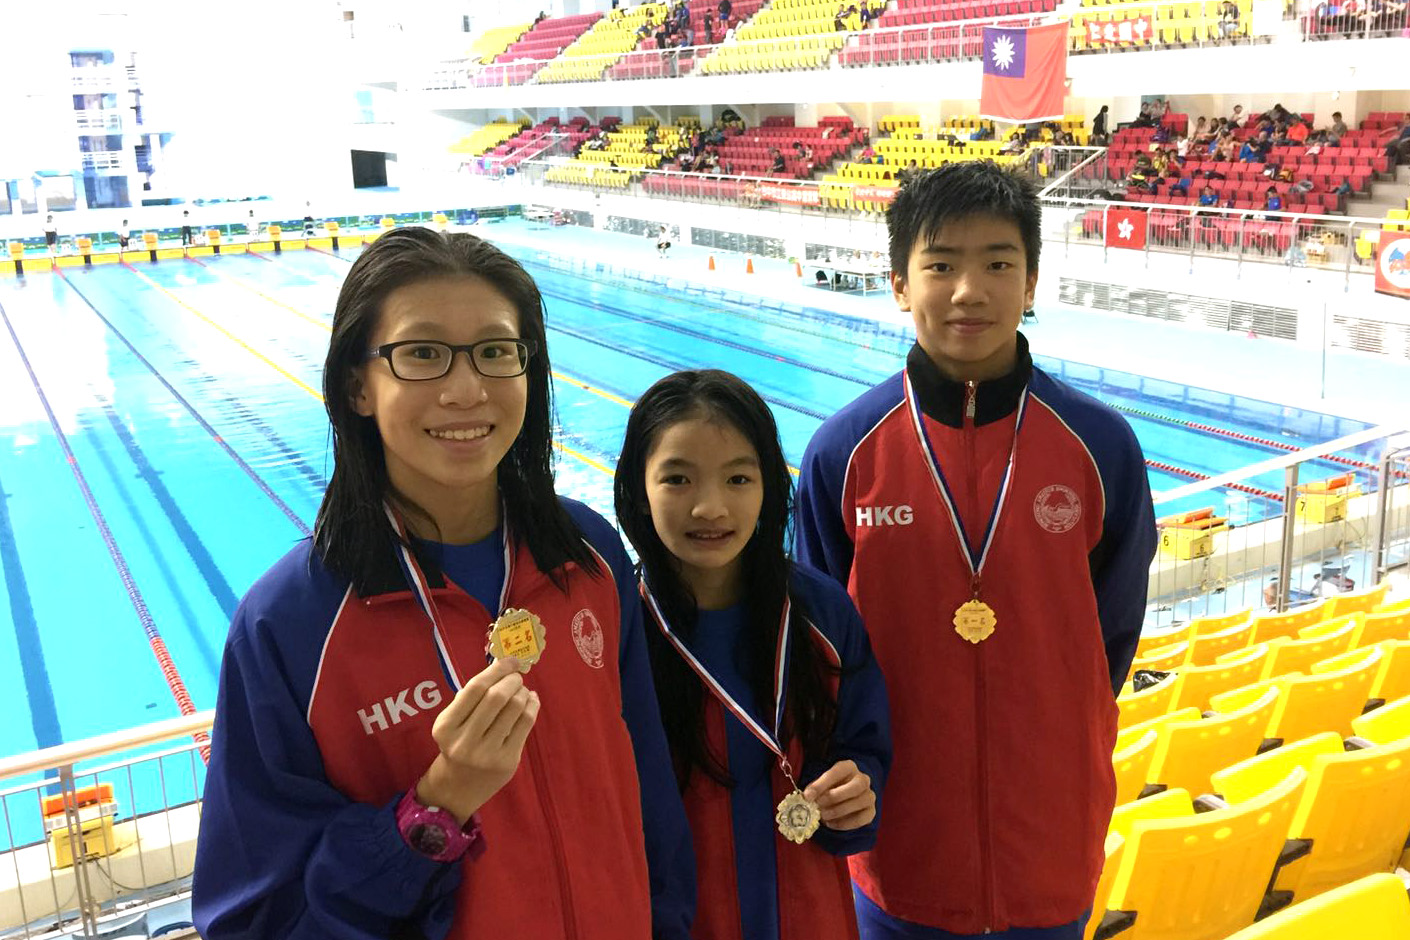 Win Tin Swimming Club - Taiwan Age Group Swimming Championships 4